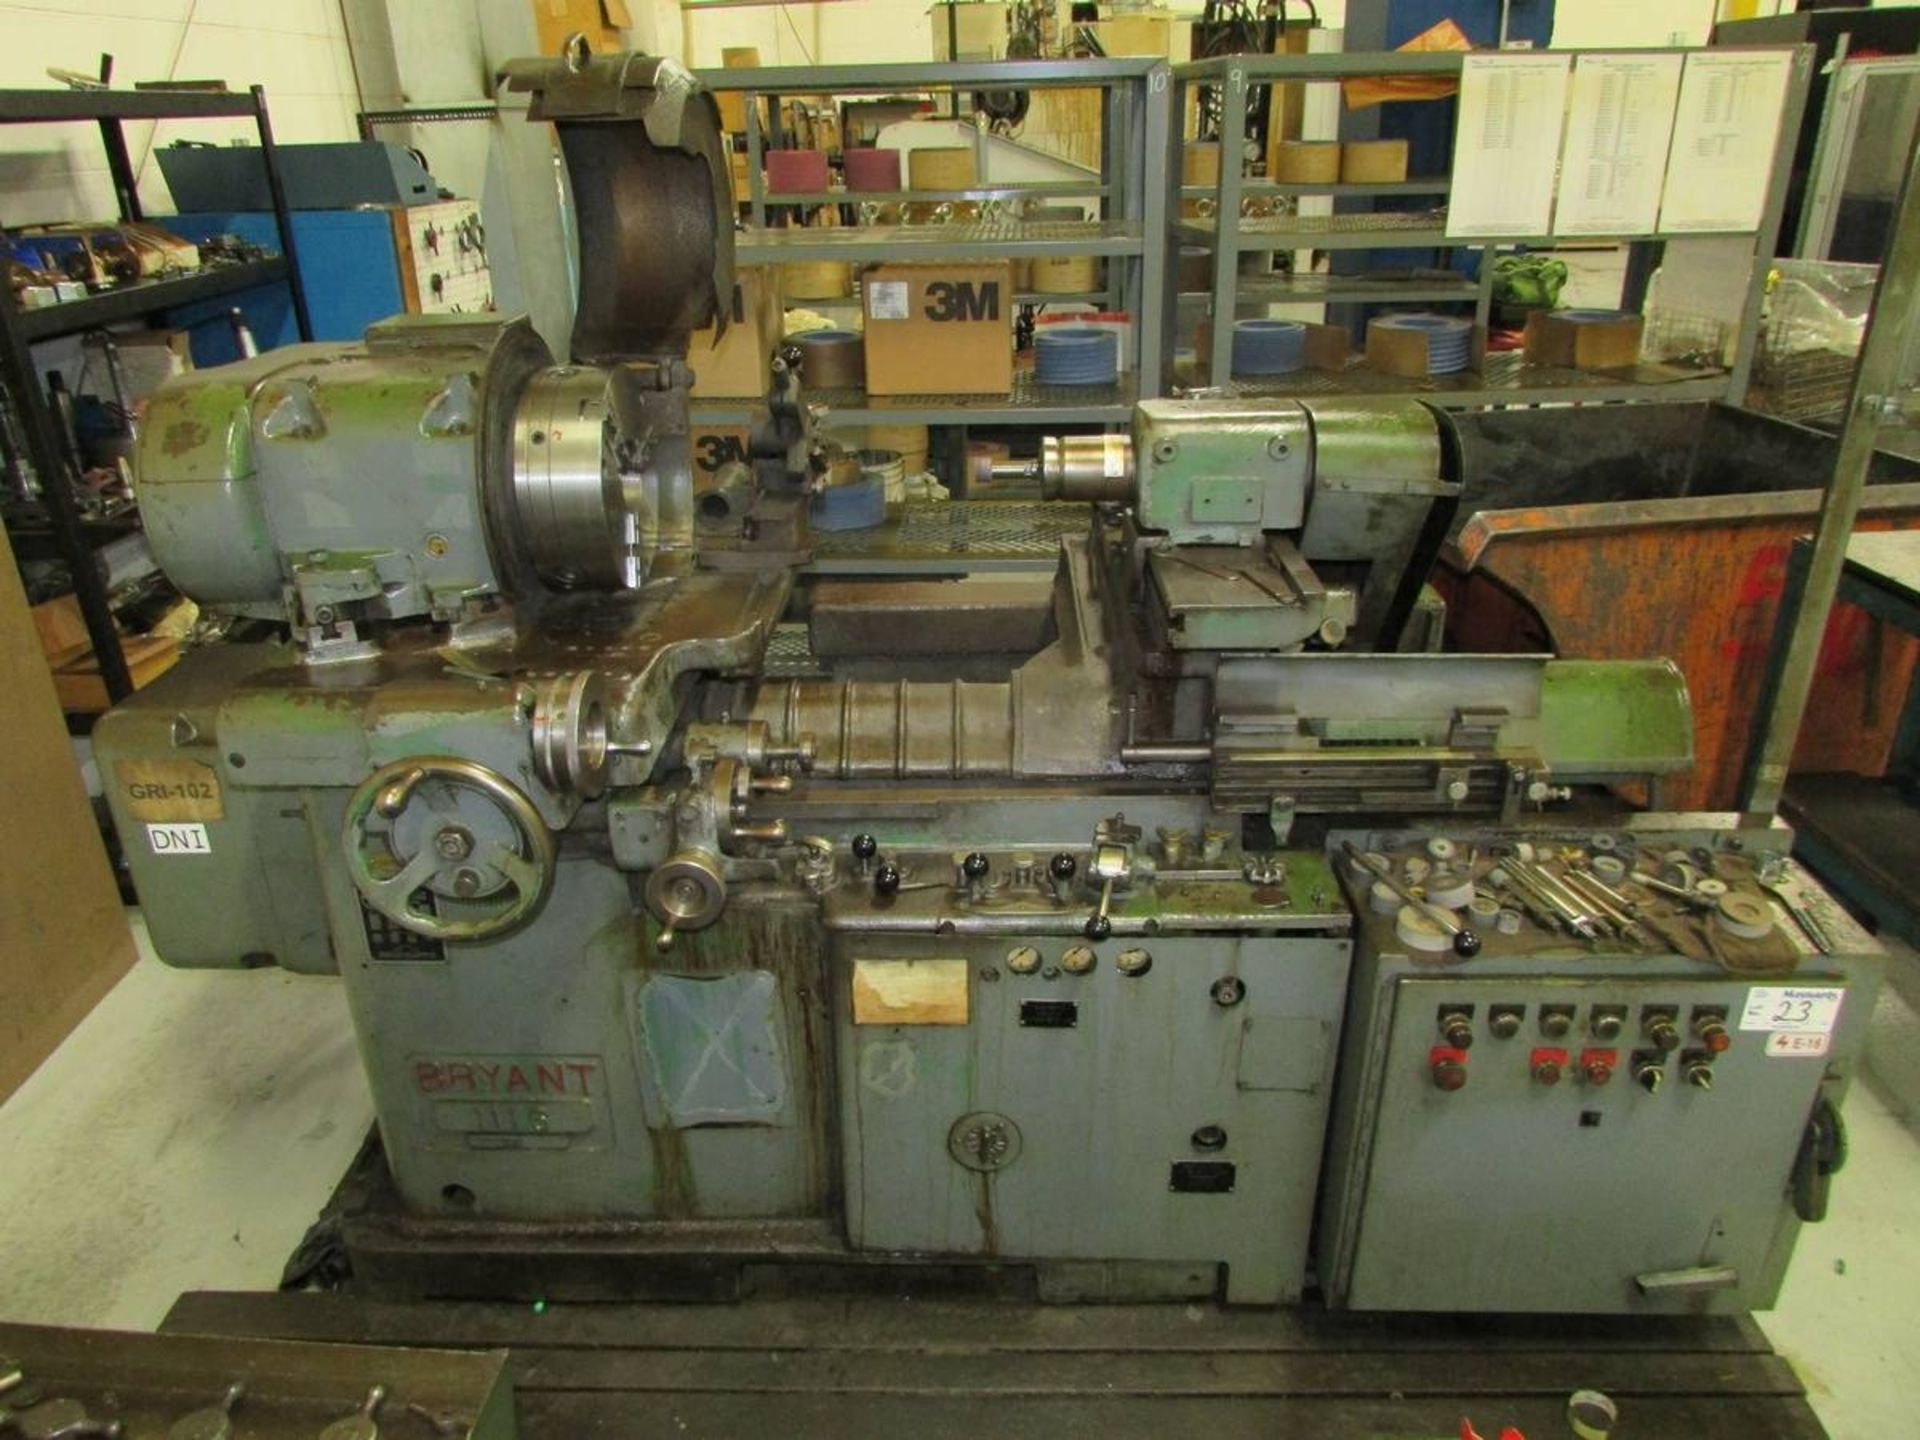 1981 Bryant 1116 ID Cylindrical Grinder - Image 2 of 20